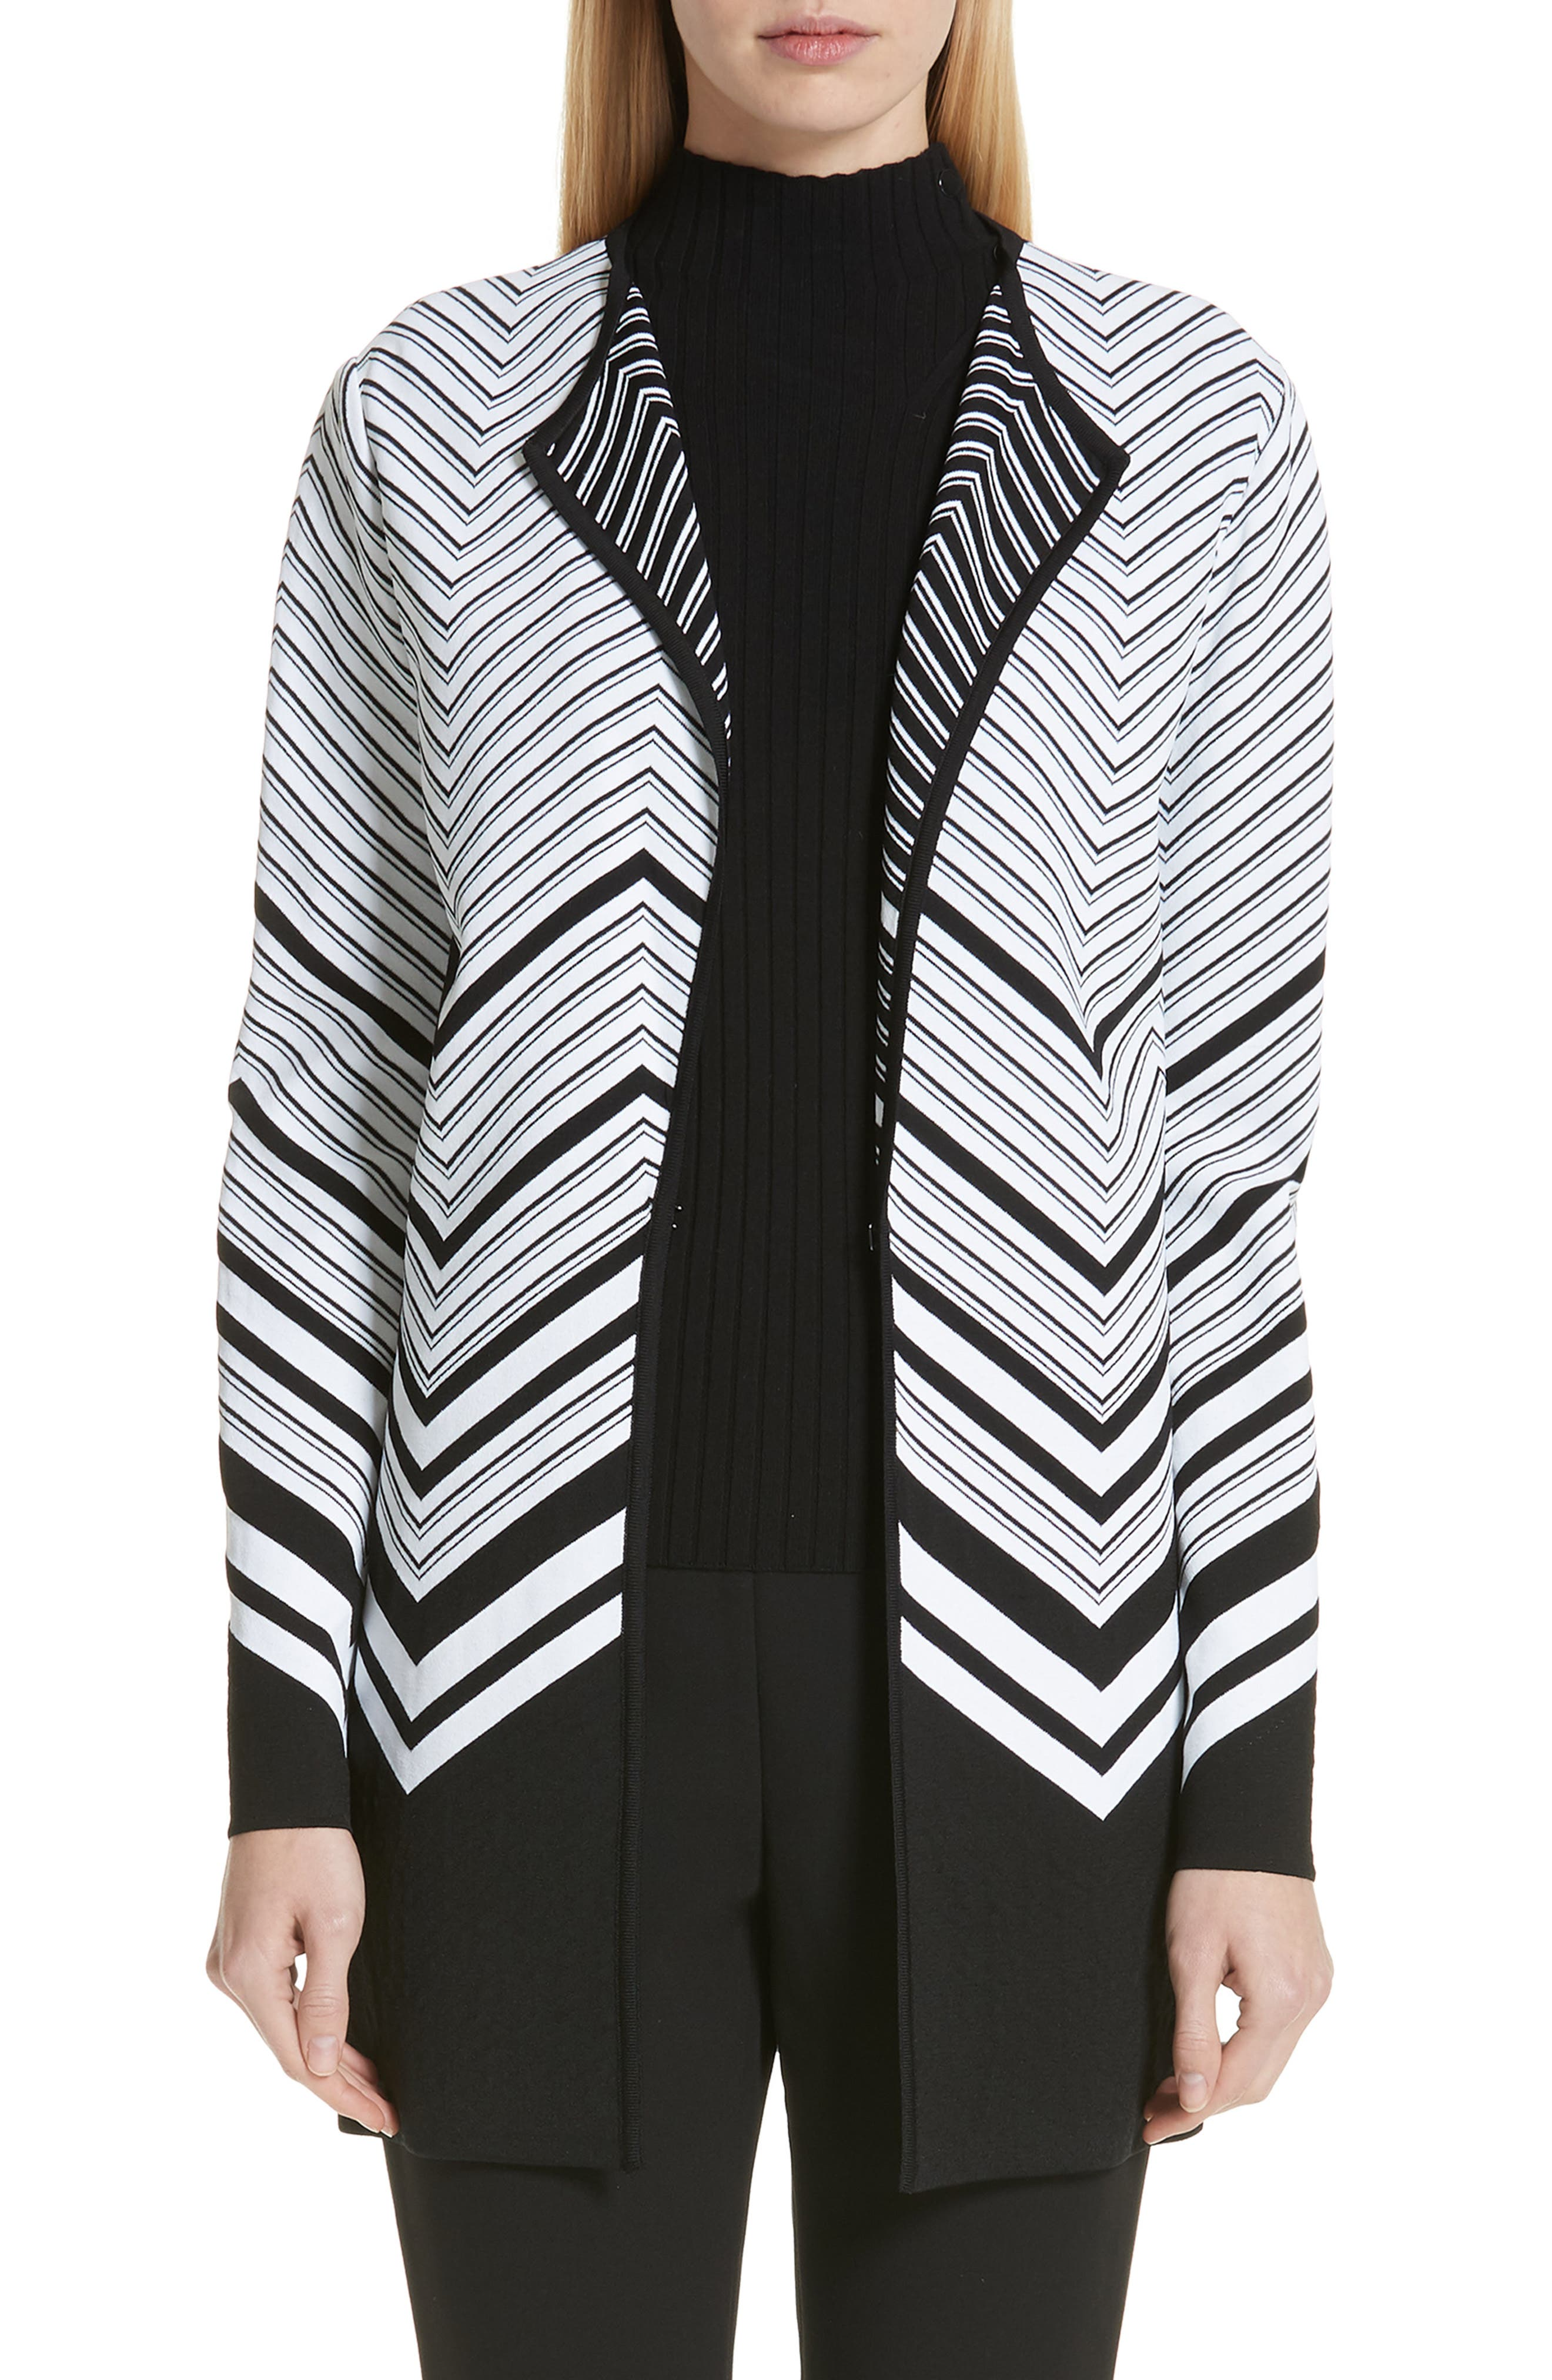 Chevron Jacquard Sweater Jacket,                             Main thumbnail 1, color,                             CAVIAR/ WHITE